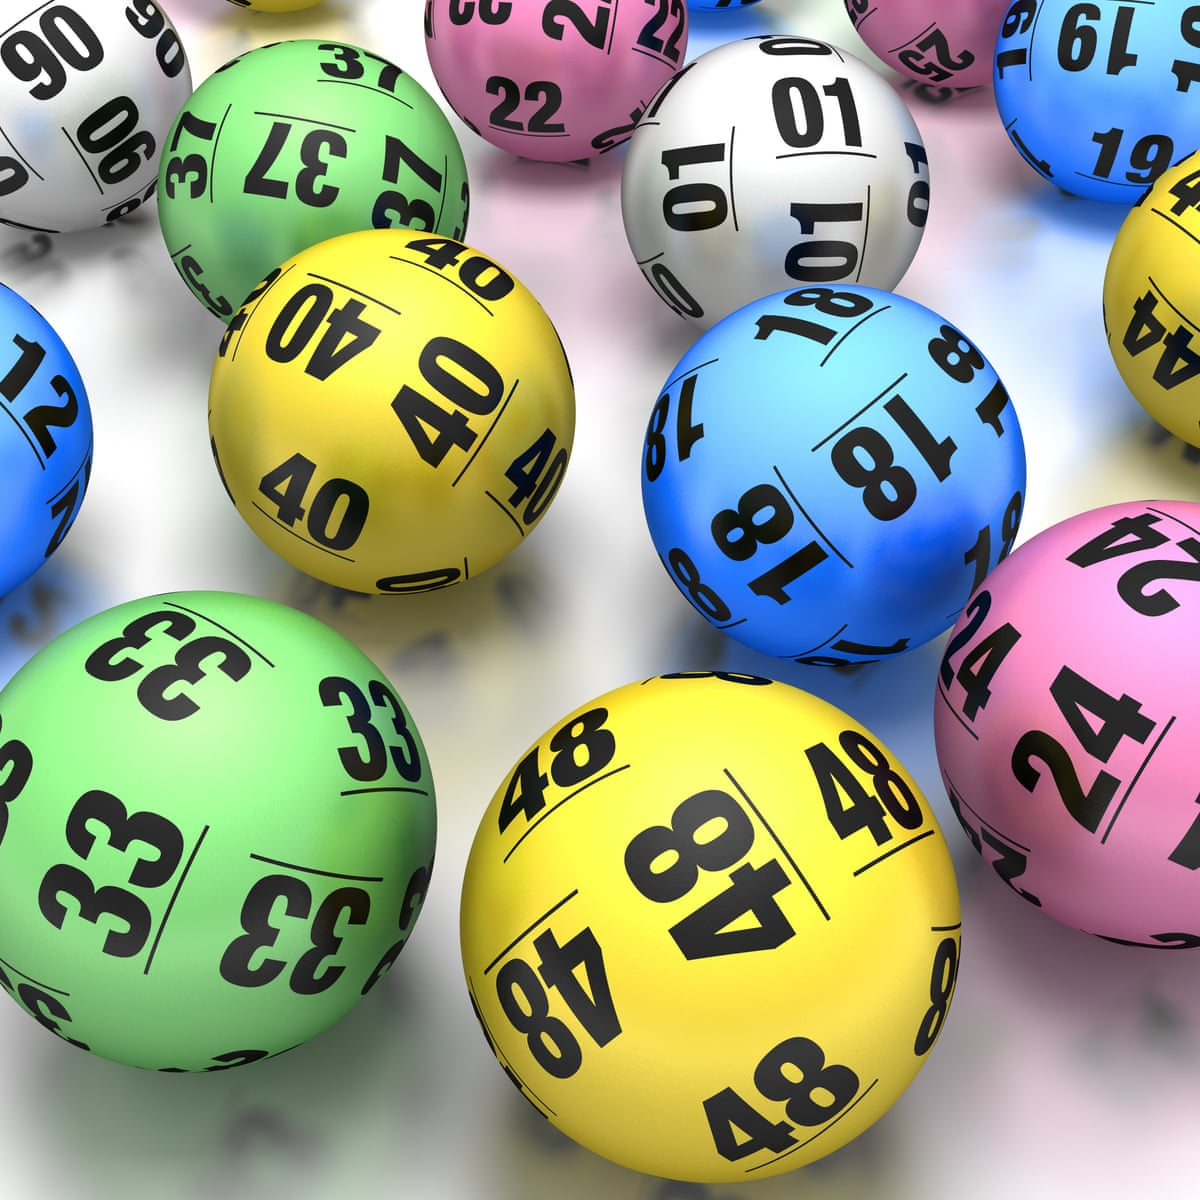 Six in a row: winning numbers in South African lottery are: 5, 6, 7, 8, 9  and 10   South Africa   The Guardian